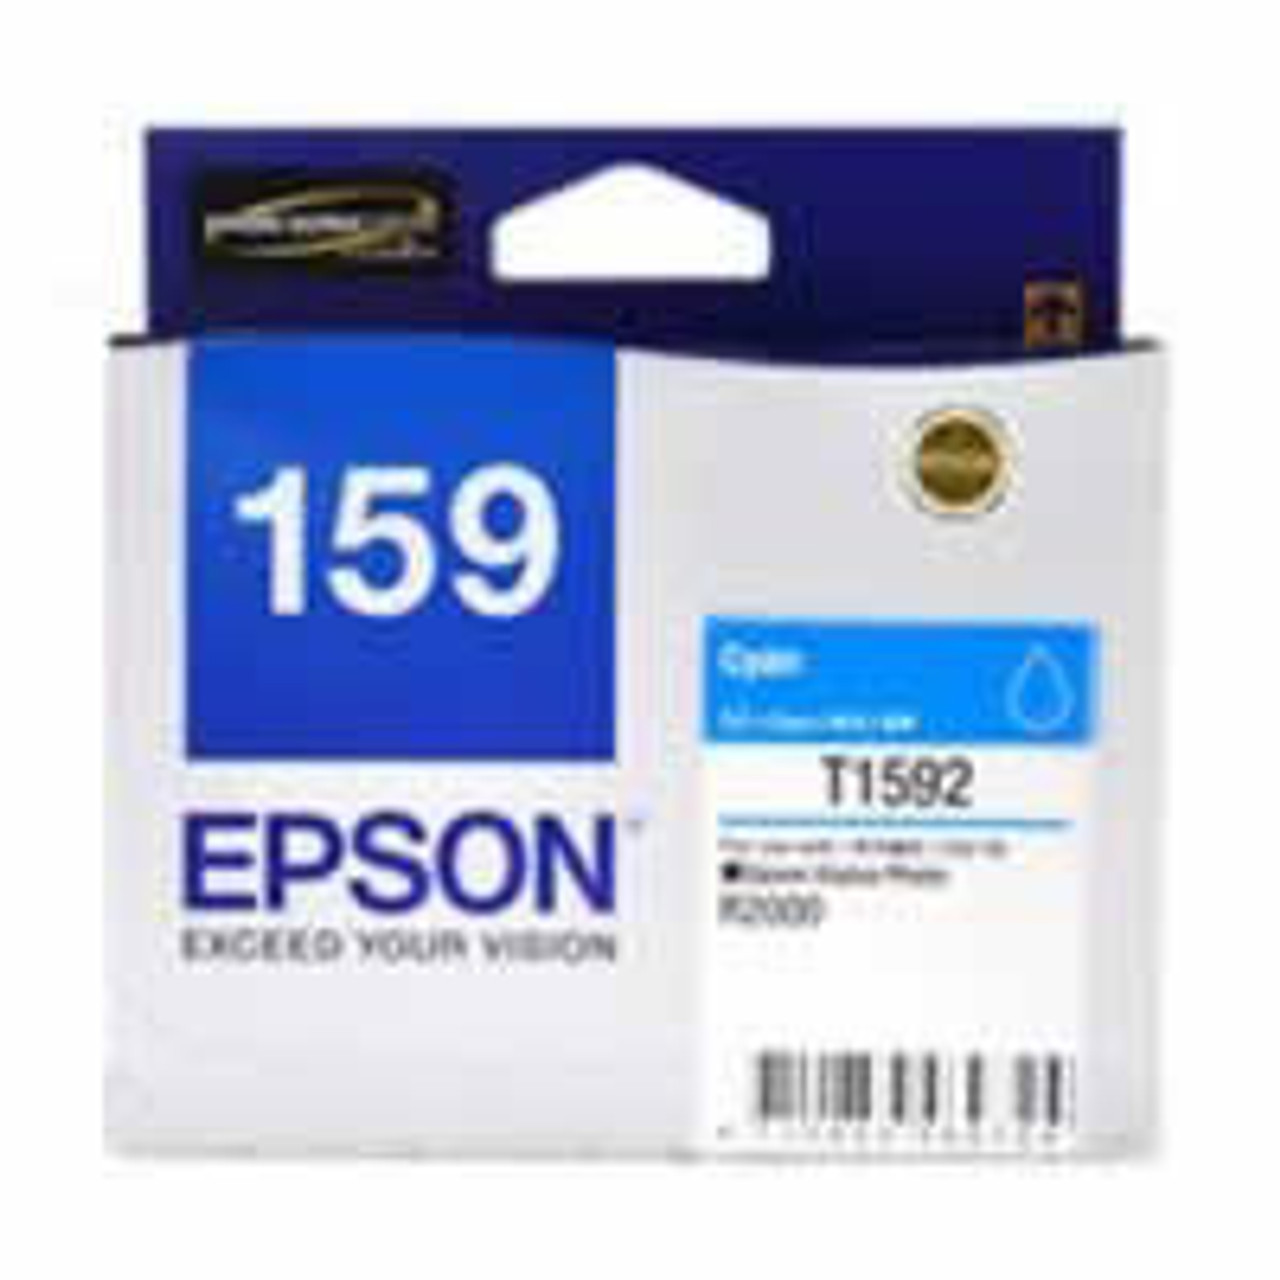 Image for Epson 1592 Cyan Ink Cartridge CX Computer Superstore